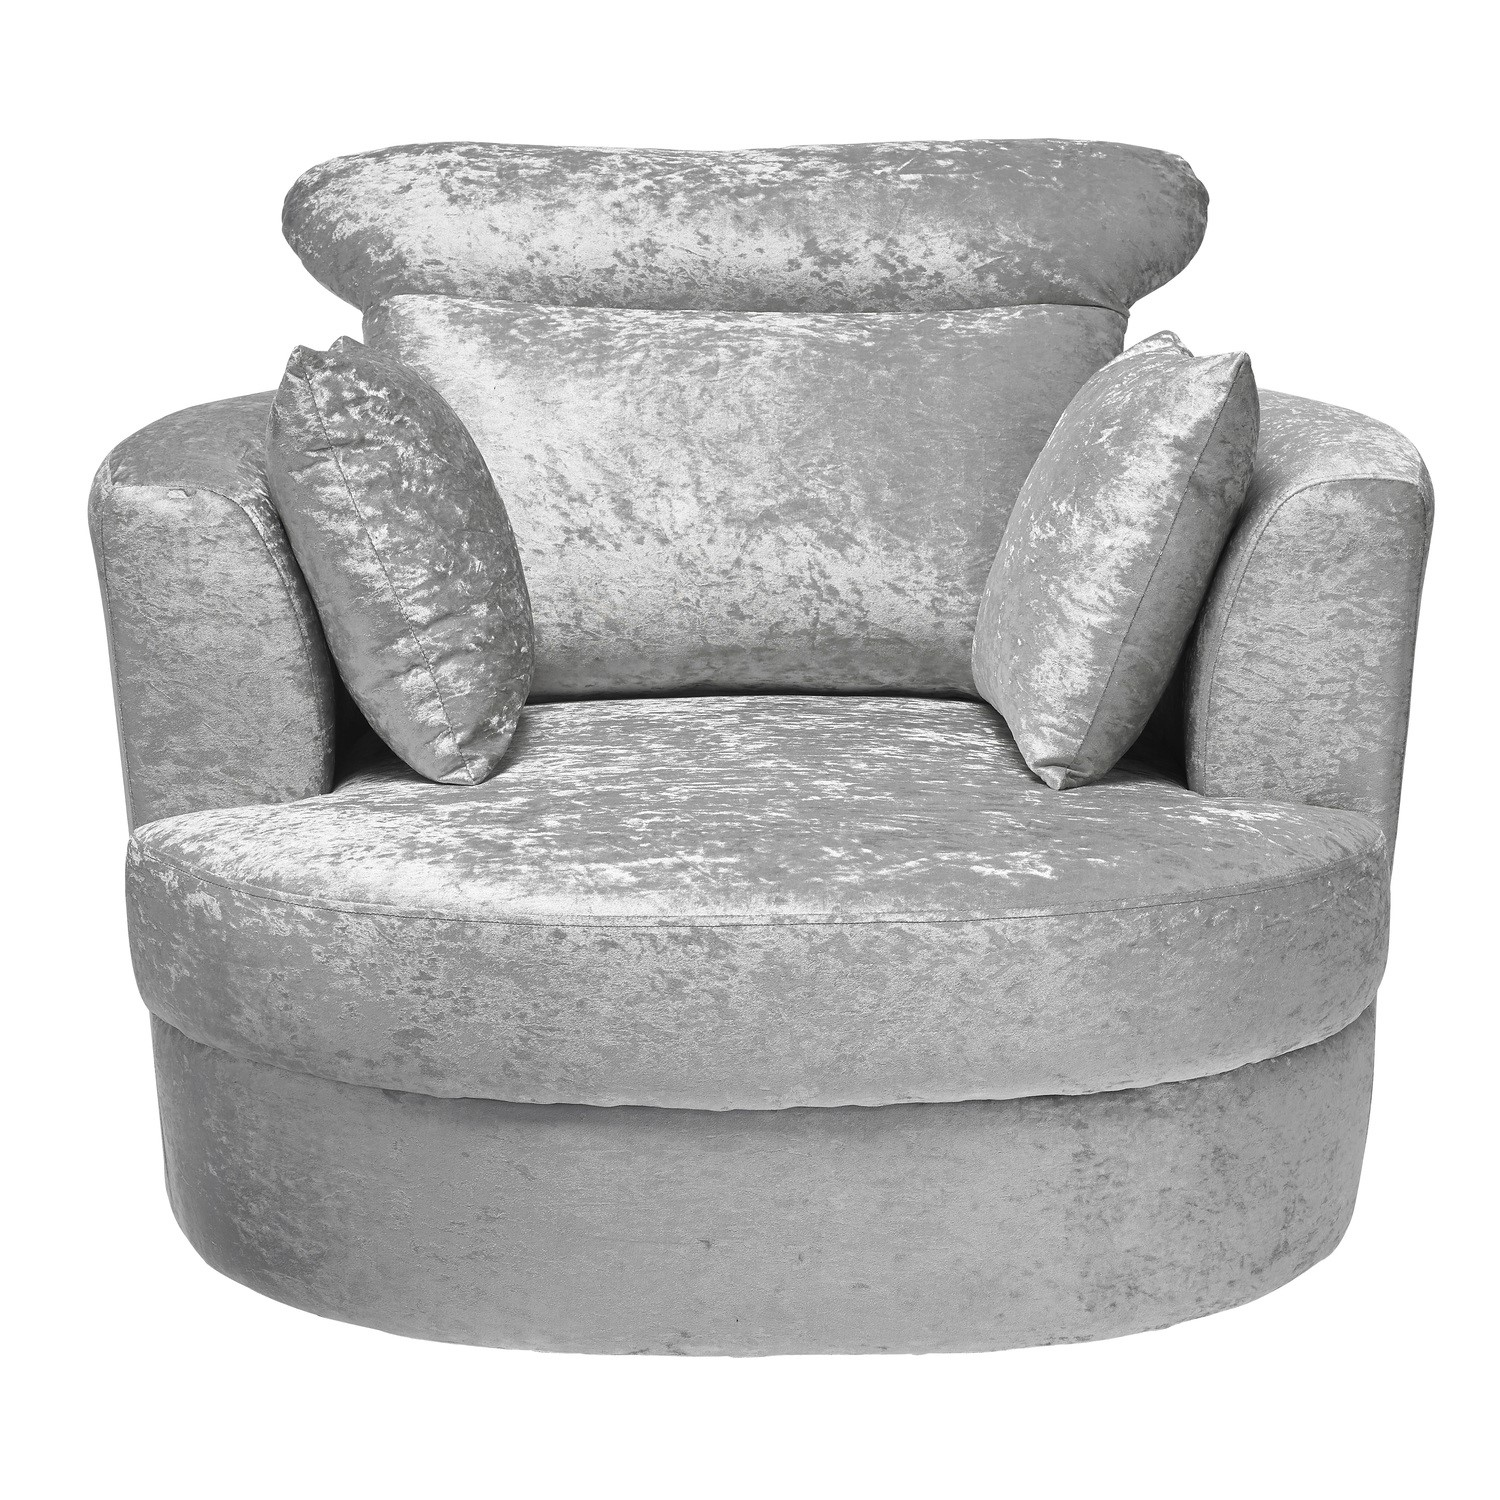 LPD Swivel Snuggler Chair in Silver Crushed Velvet - Bliss